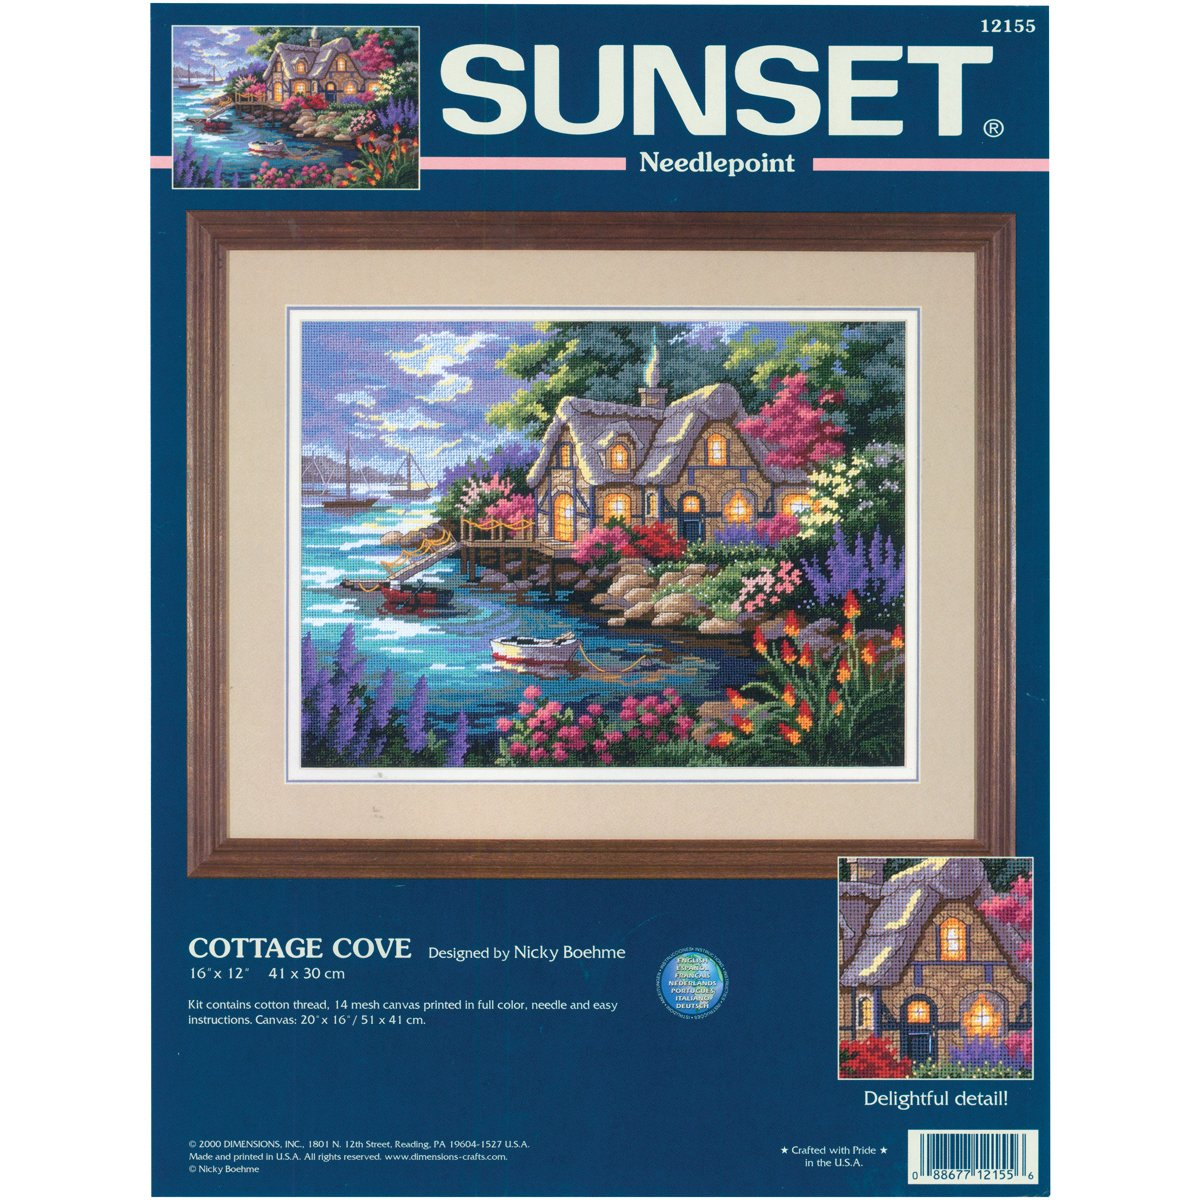 16 x 12 Dimensions Needlepoint Kit Cottage Cove